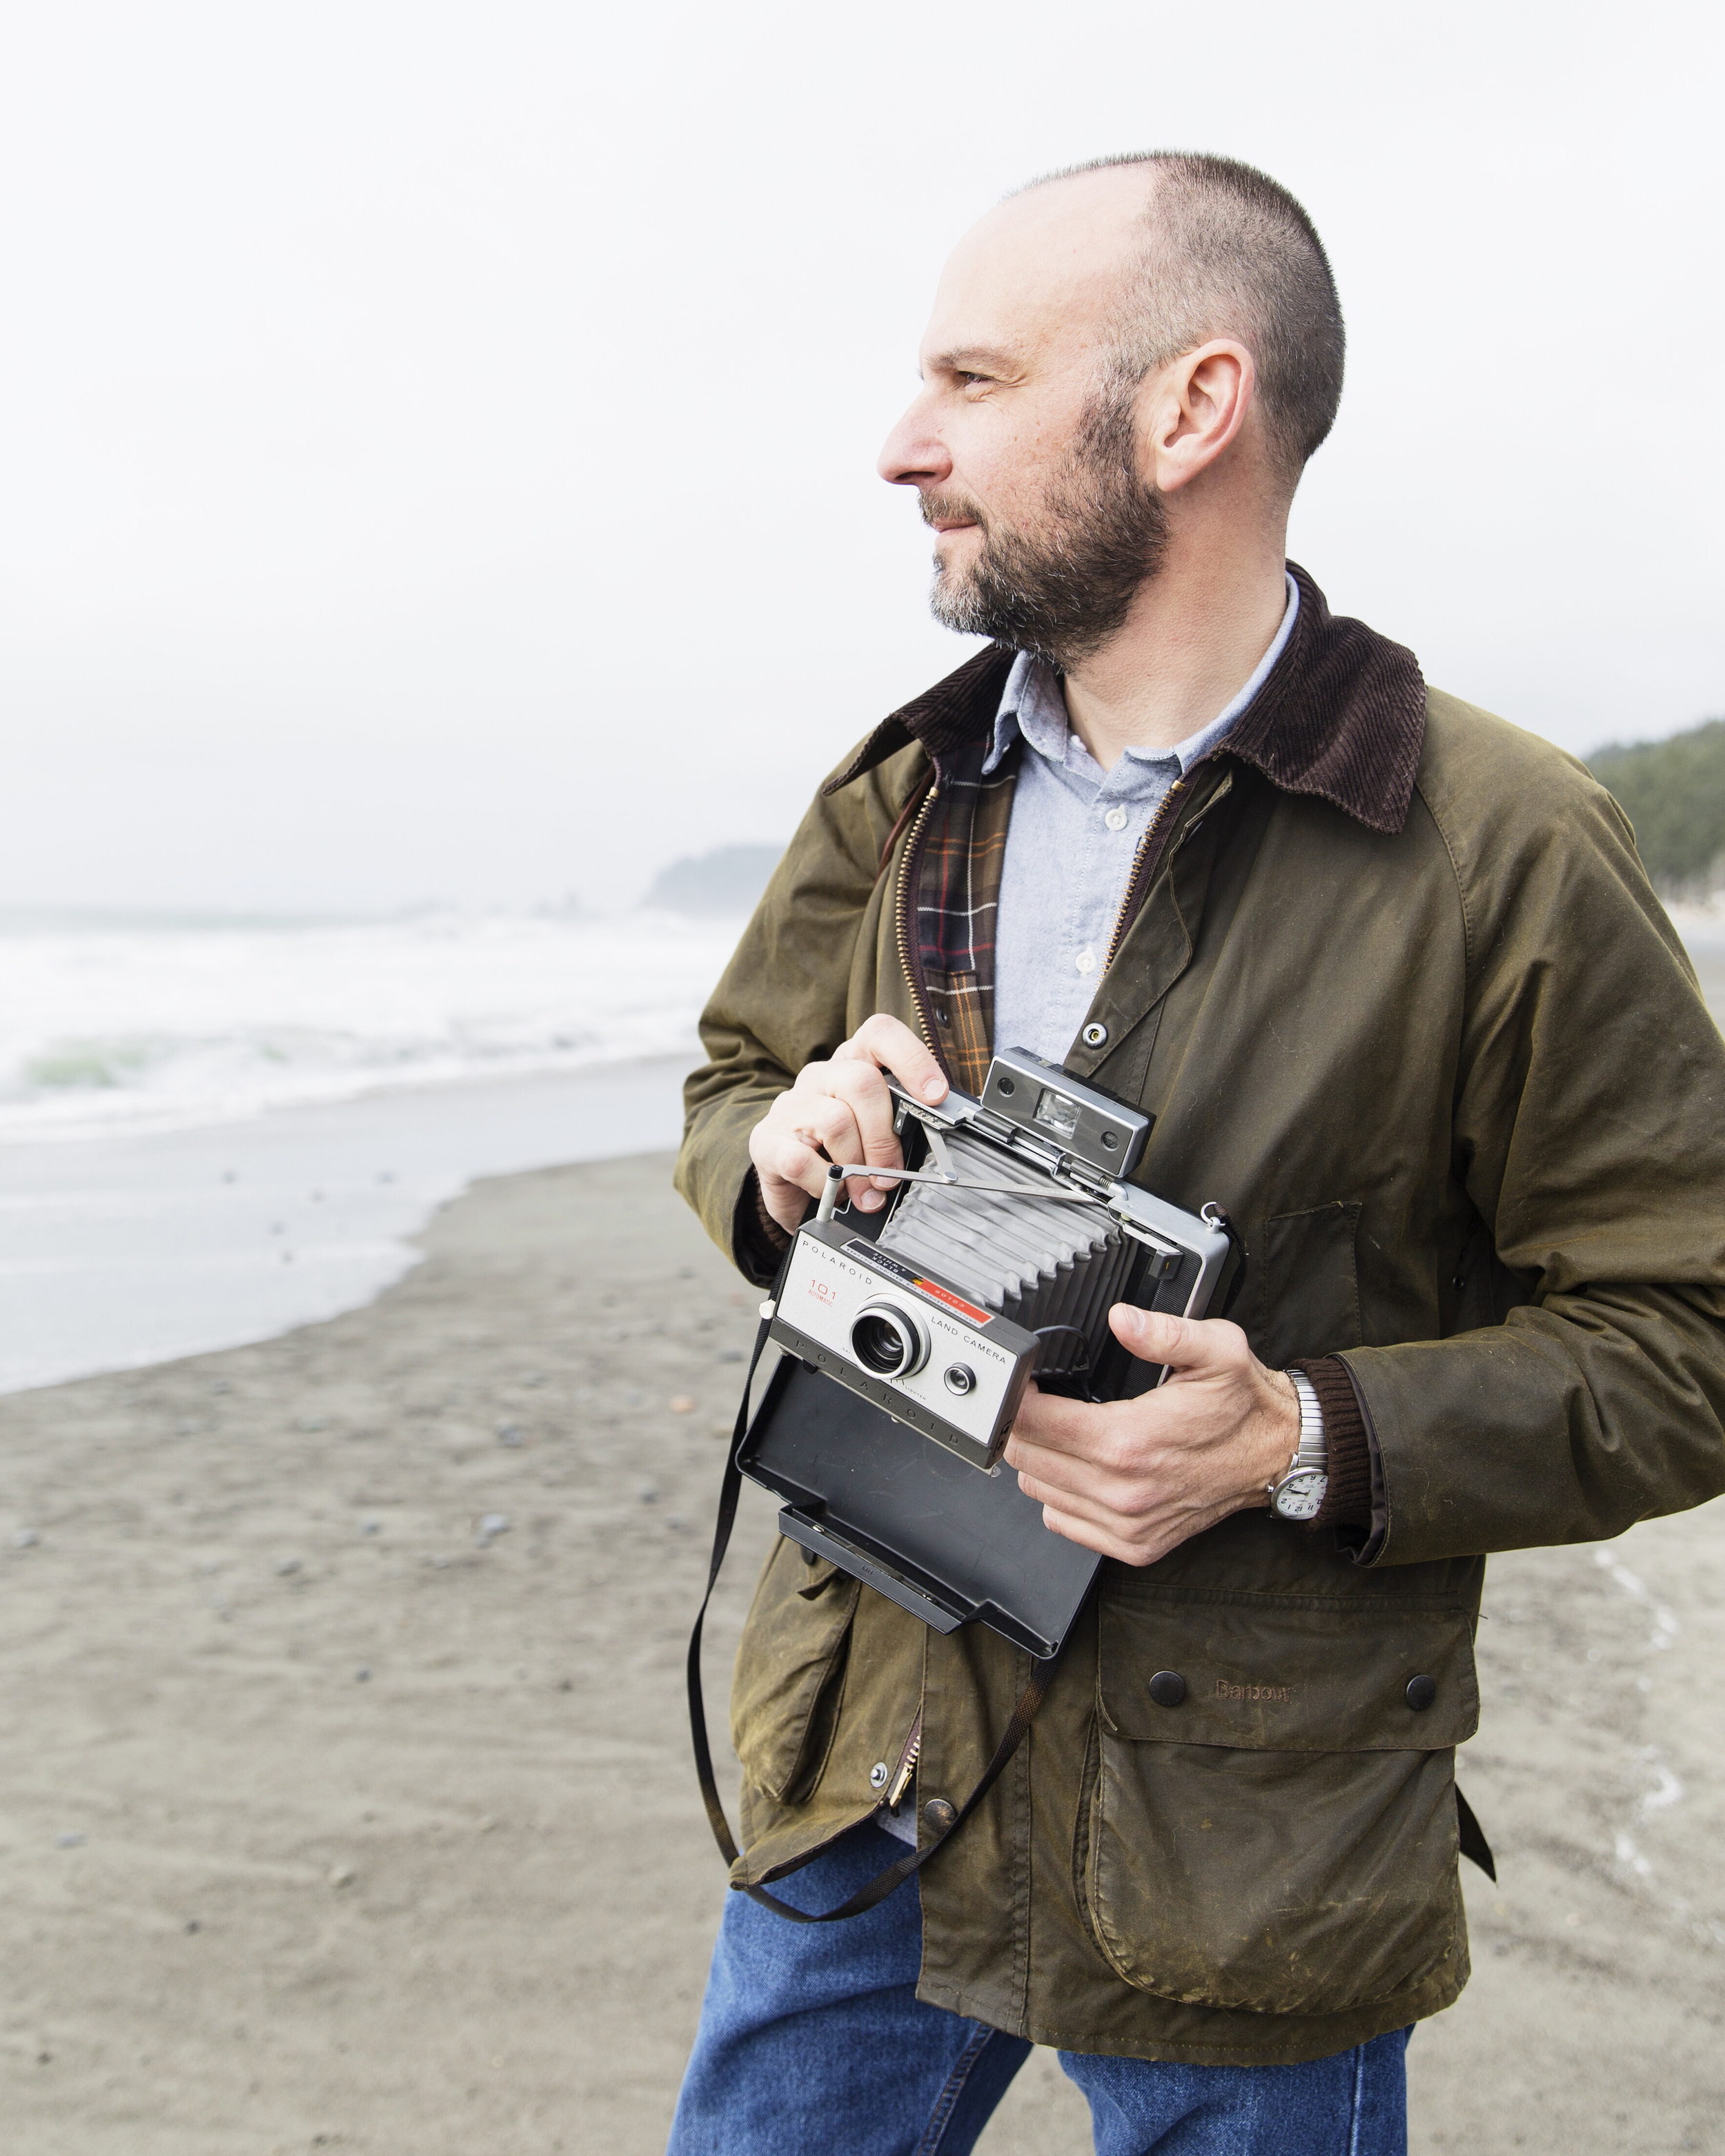 Tony Cross at Rialto Beach